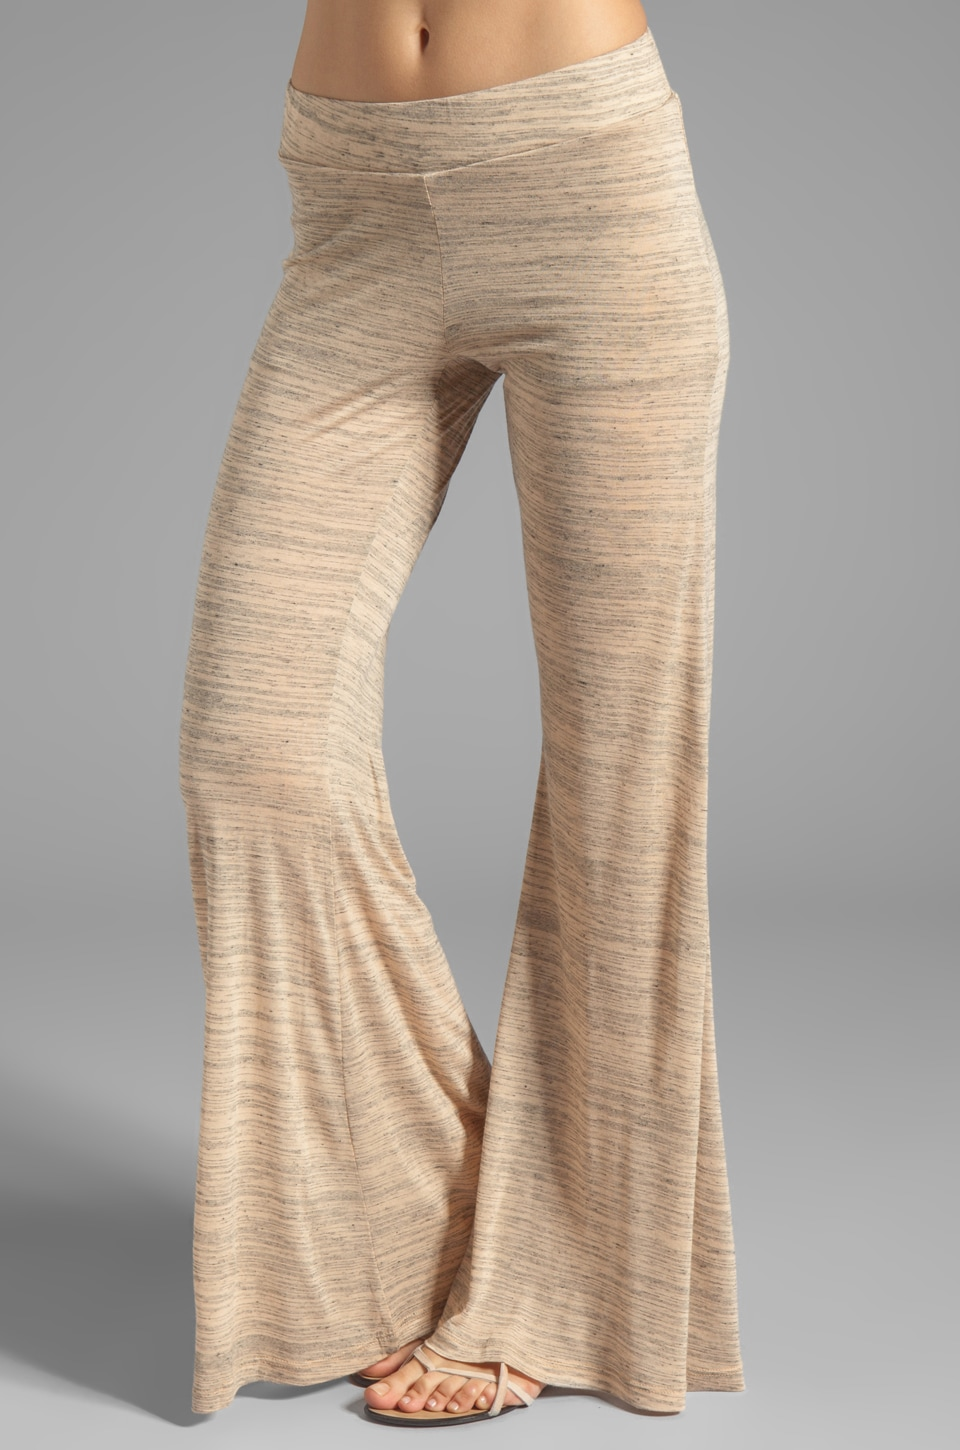 Blue Life Classic Bell Pants in Desert